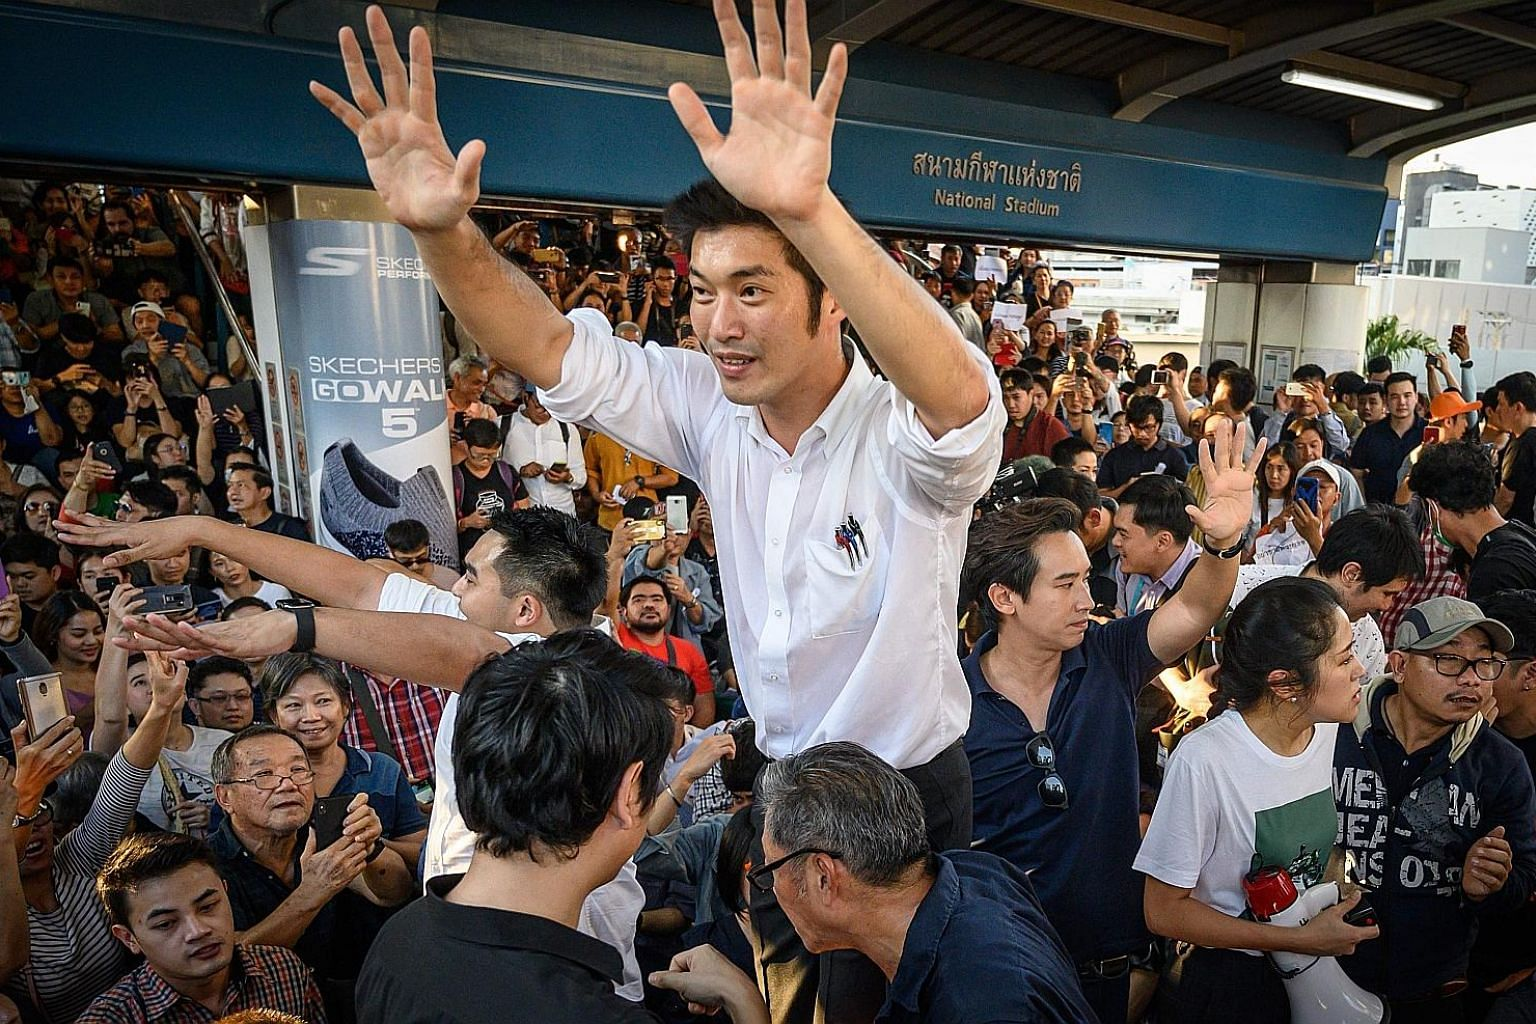 Thai Future Forward Party's leader Thanathorn Juangroongruangkit addressing his supporters during an unauthorised flash mob rally in downtown Bangkok yesterday. It revived memories of the street protests that have roiled Bangkok periodically over the